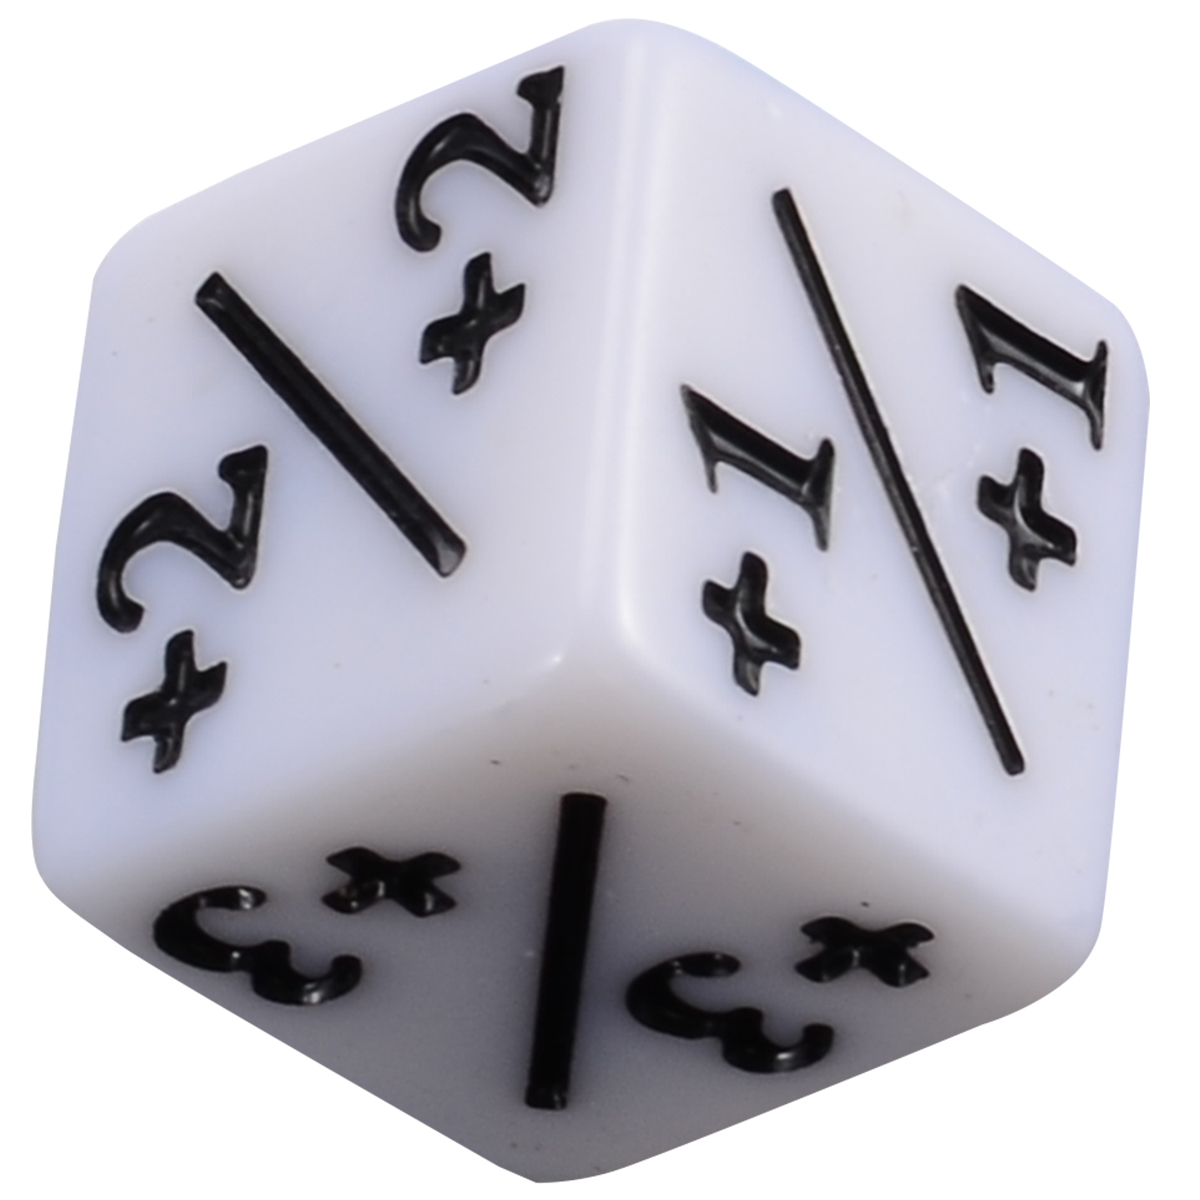 5pcs Negative +1/+1 Dices White Dice Counters For Magic Gaming The Gathering MTG Games Interesting Outdoor Party Activities Tool